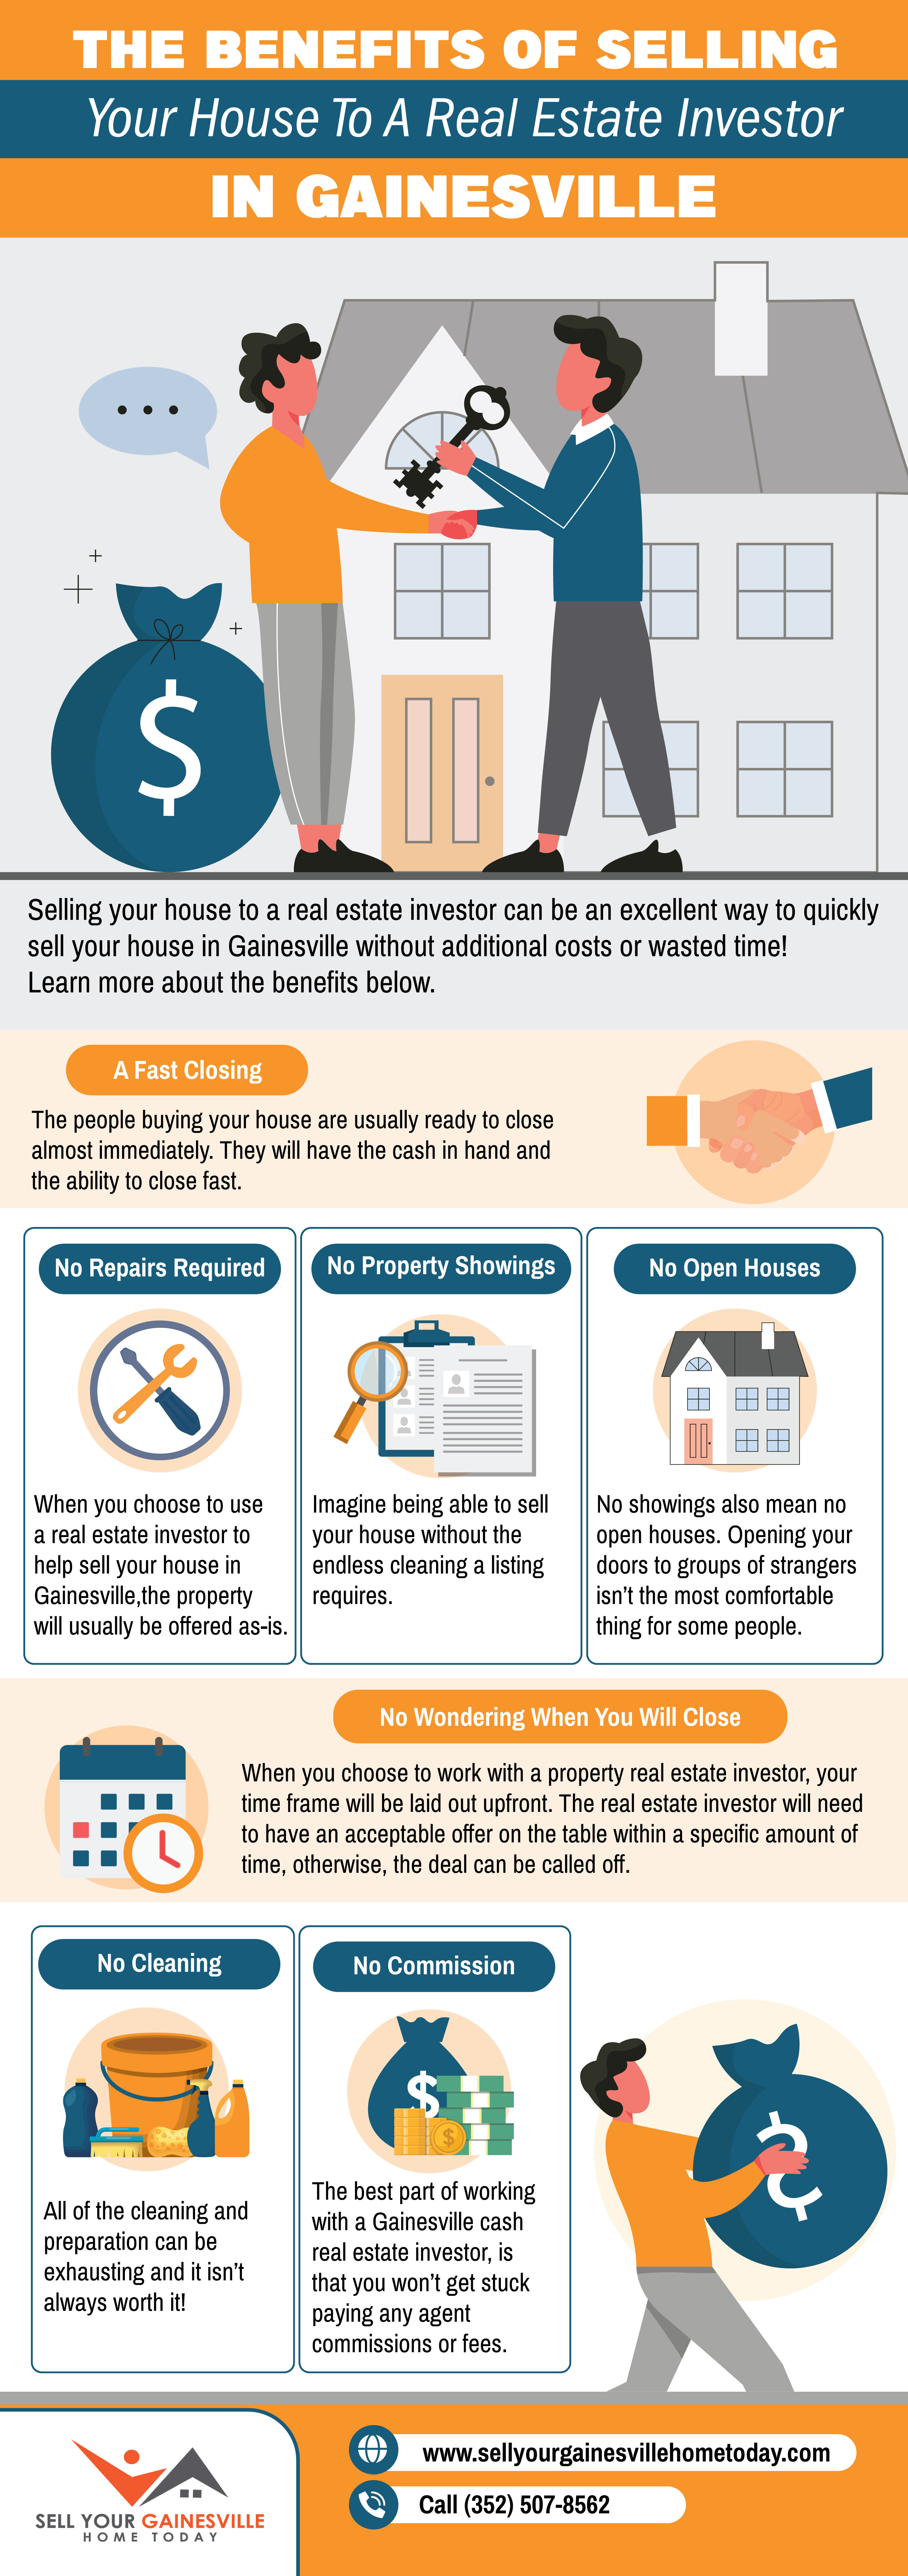 benefits of selling your house to a real estate investor in Gainesville